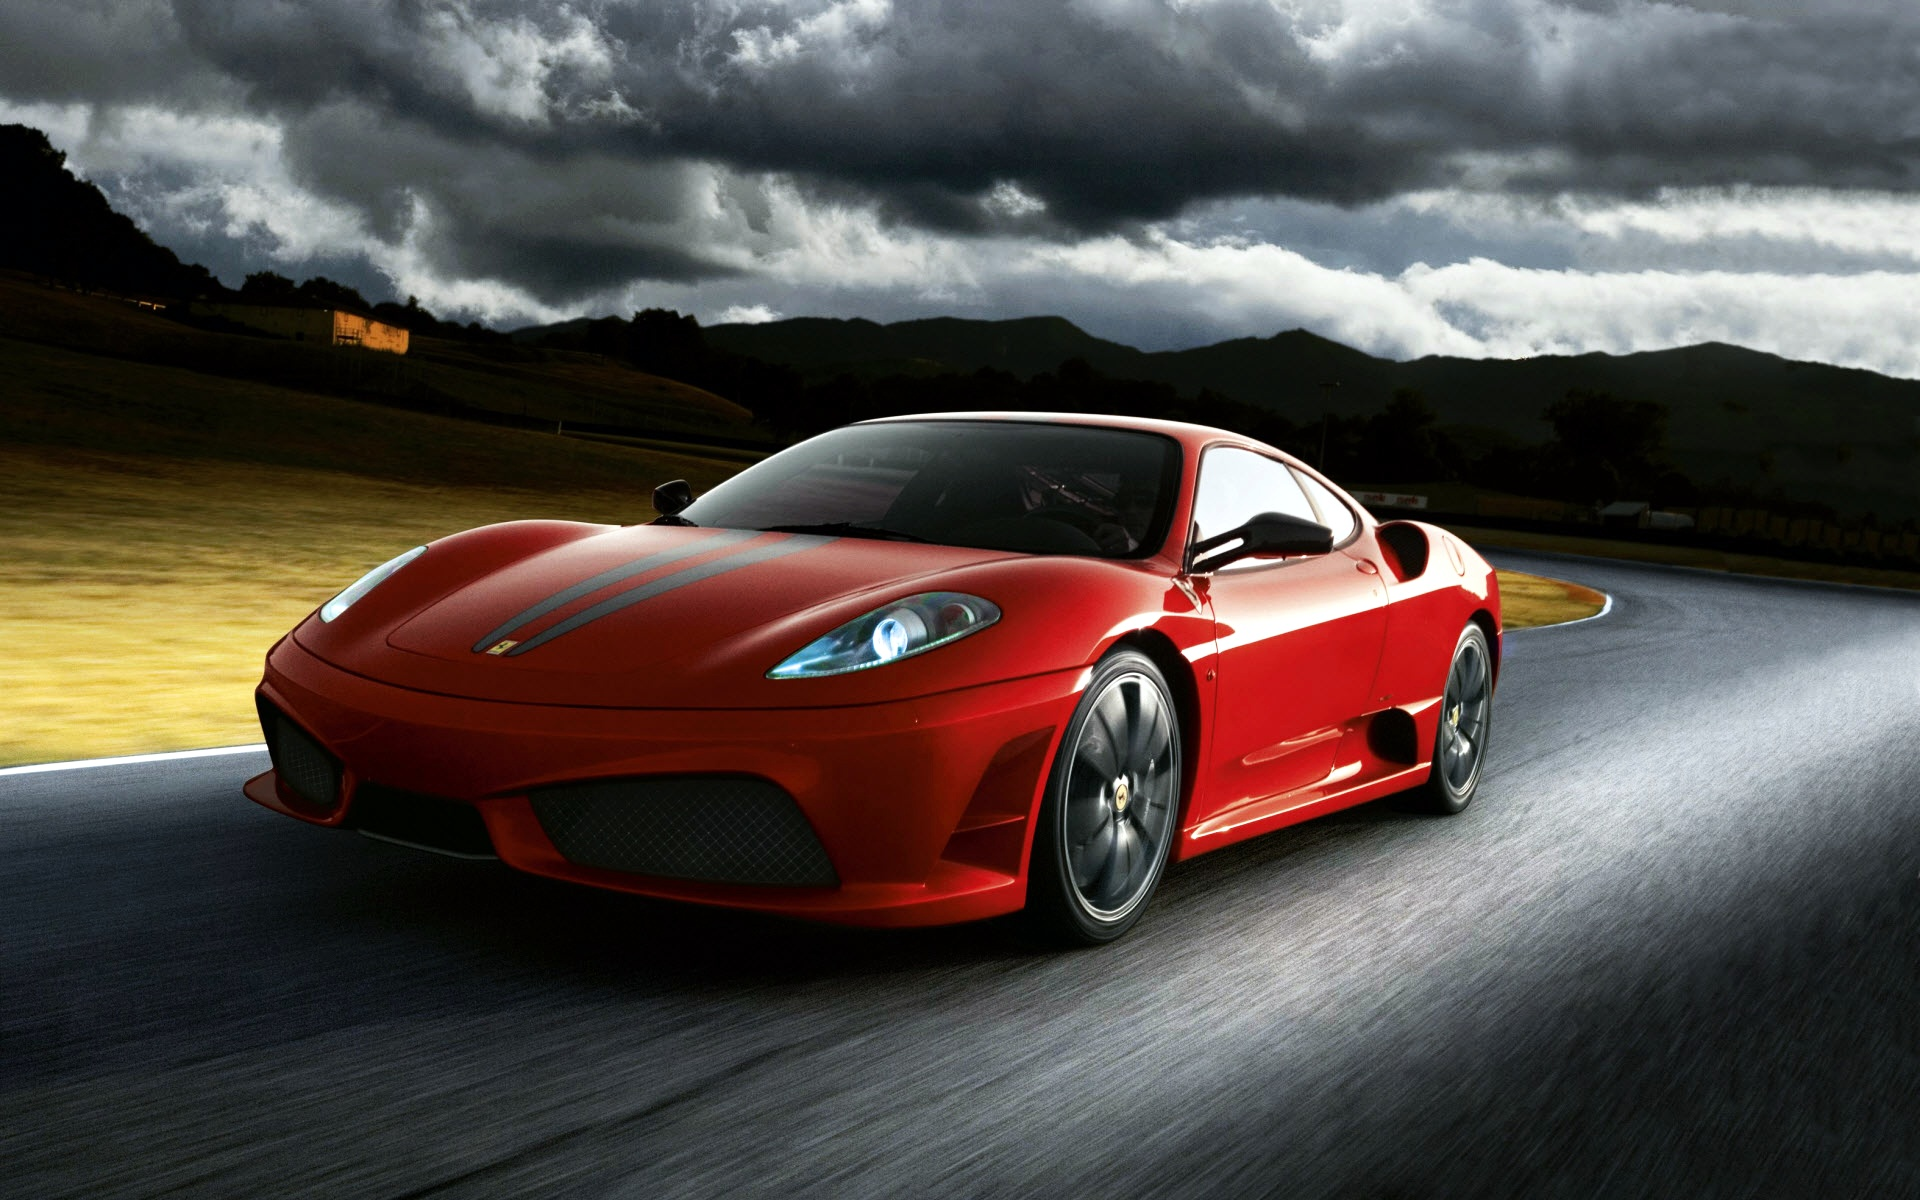 Coolest Collection of Ferrari Wallpaper & Backgrounds In HD